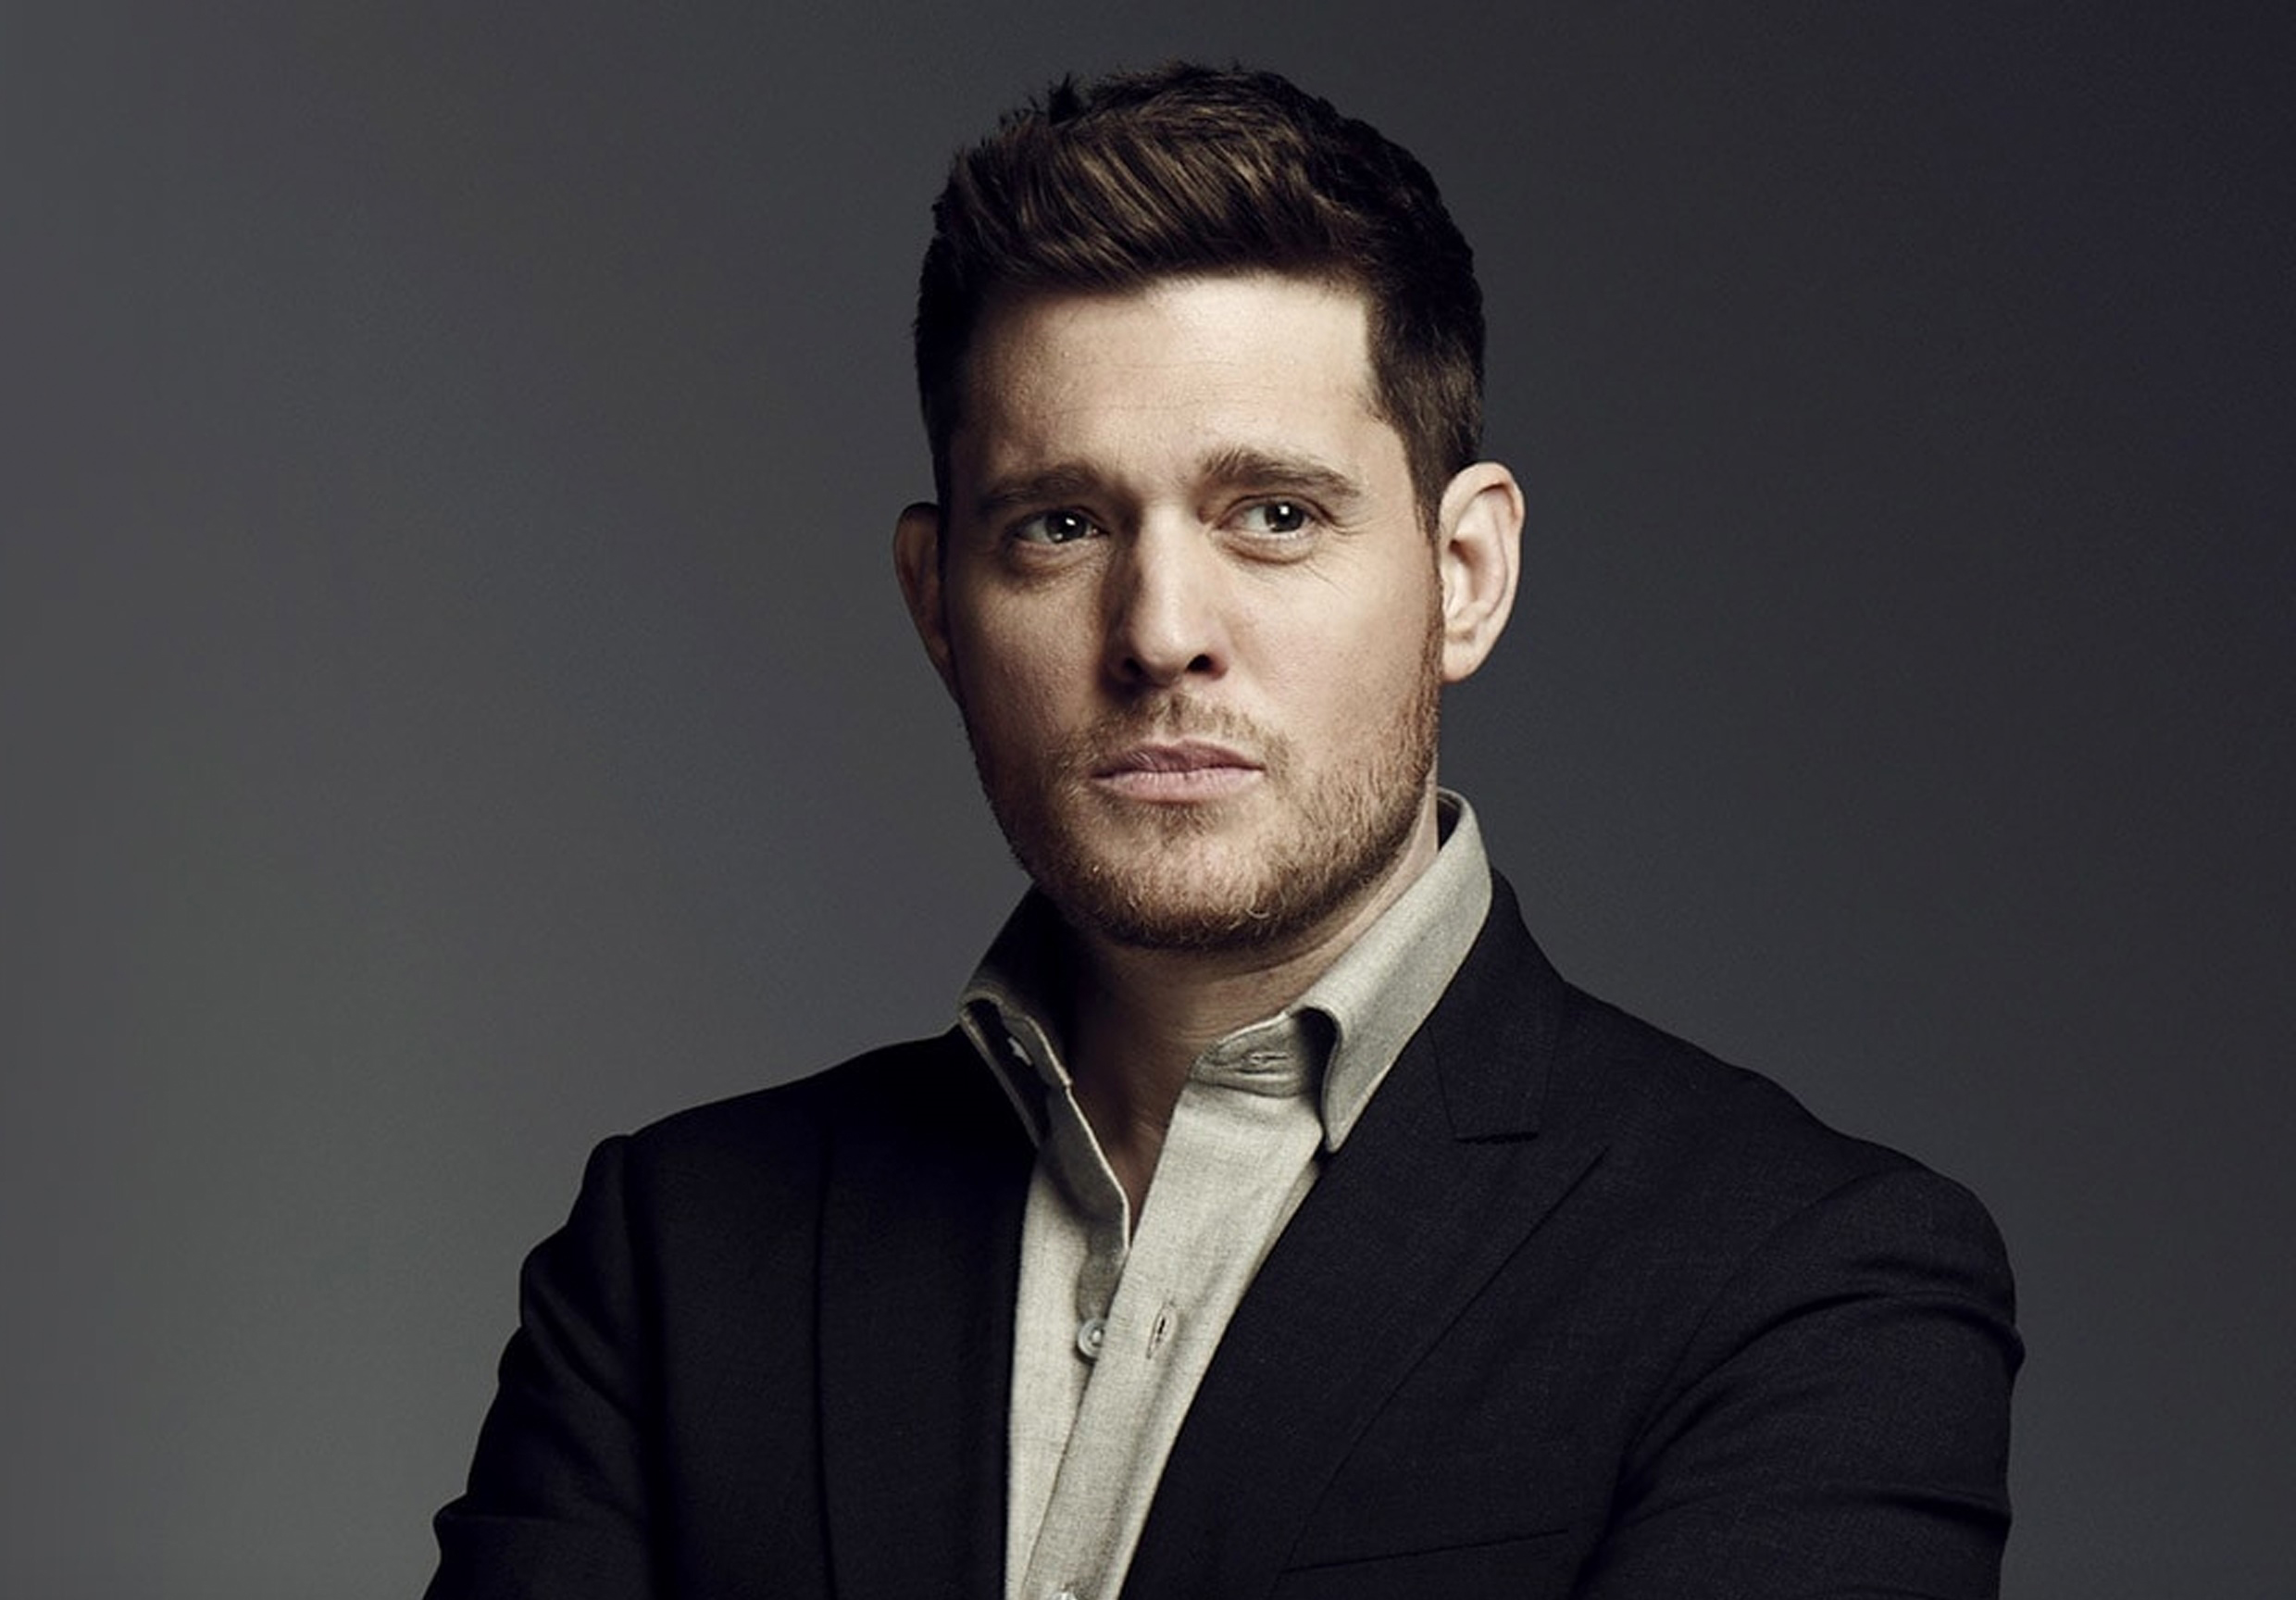 Michael buble leaked — photo 11